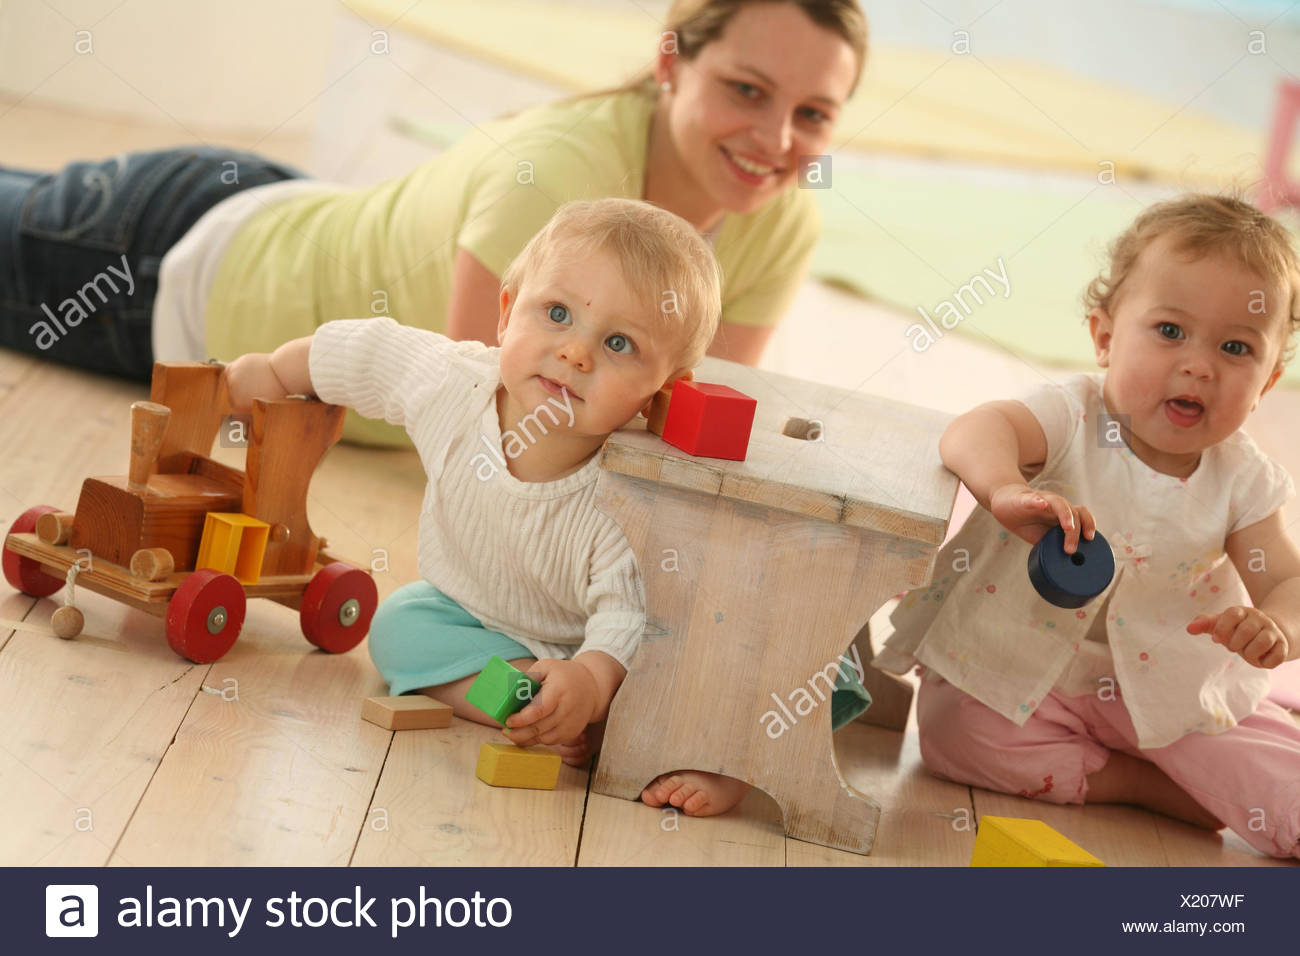 Babies, 9 months, mother, play, wooden toys, toys, dress, blond, discoveries, friends, reach, group, Indoor, boy, person, woman, girl, toys, fun, footstool, wooden locomotive, - Stock Image